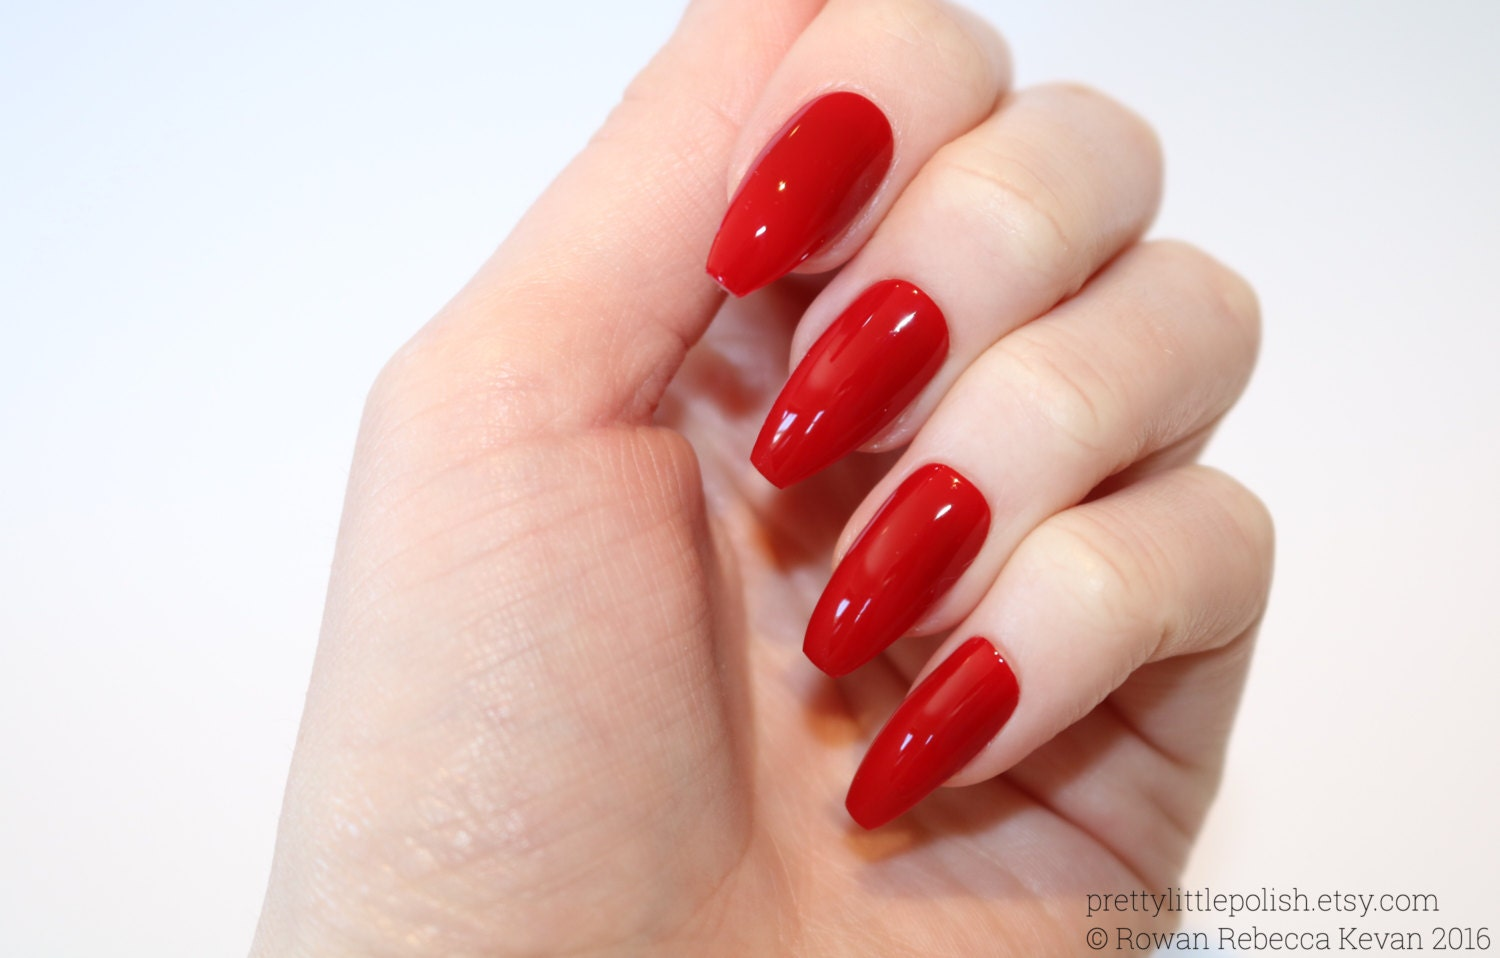 Red coffin nails Nail designs Nail art Nails Stiletto